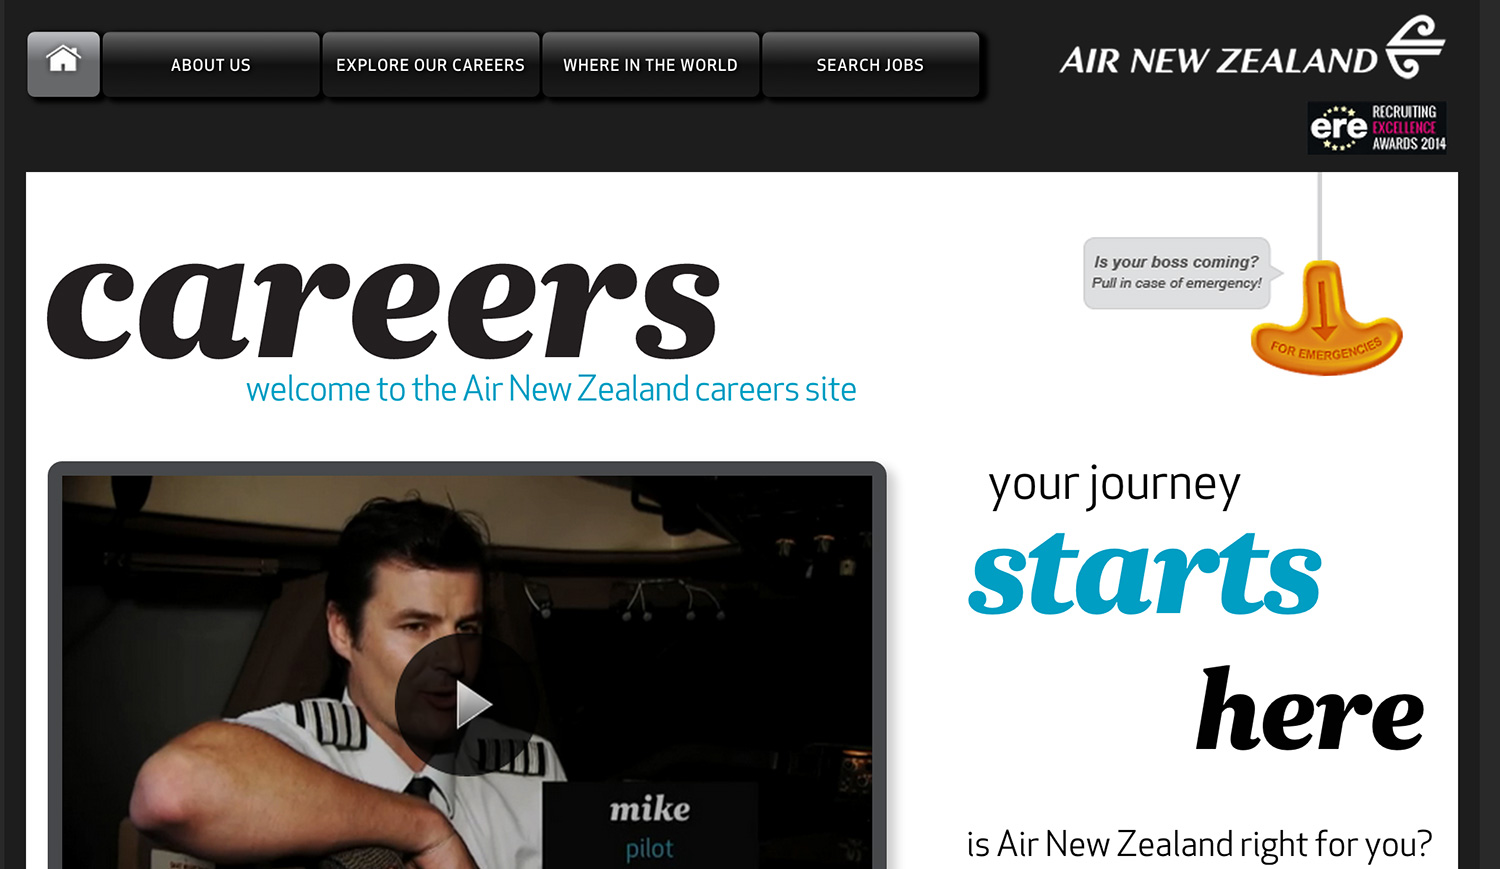 air new zealand career site